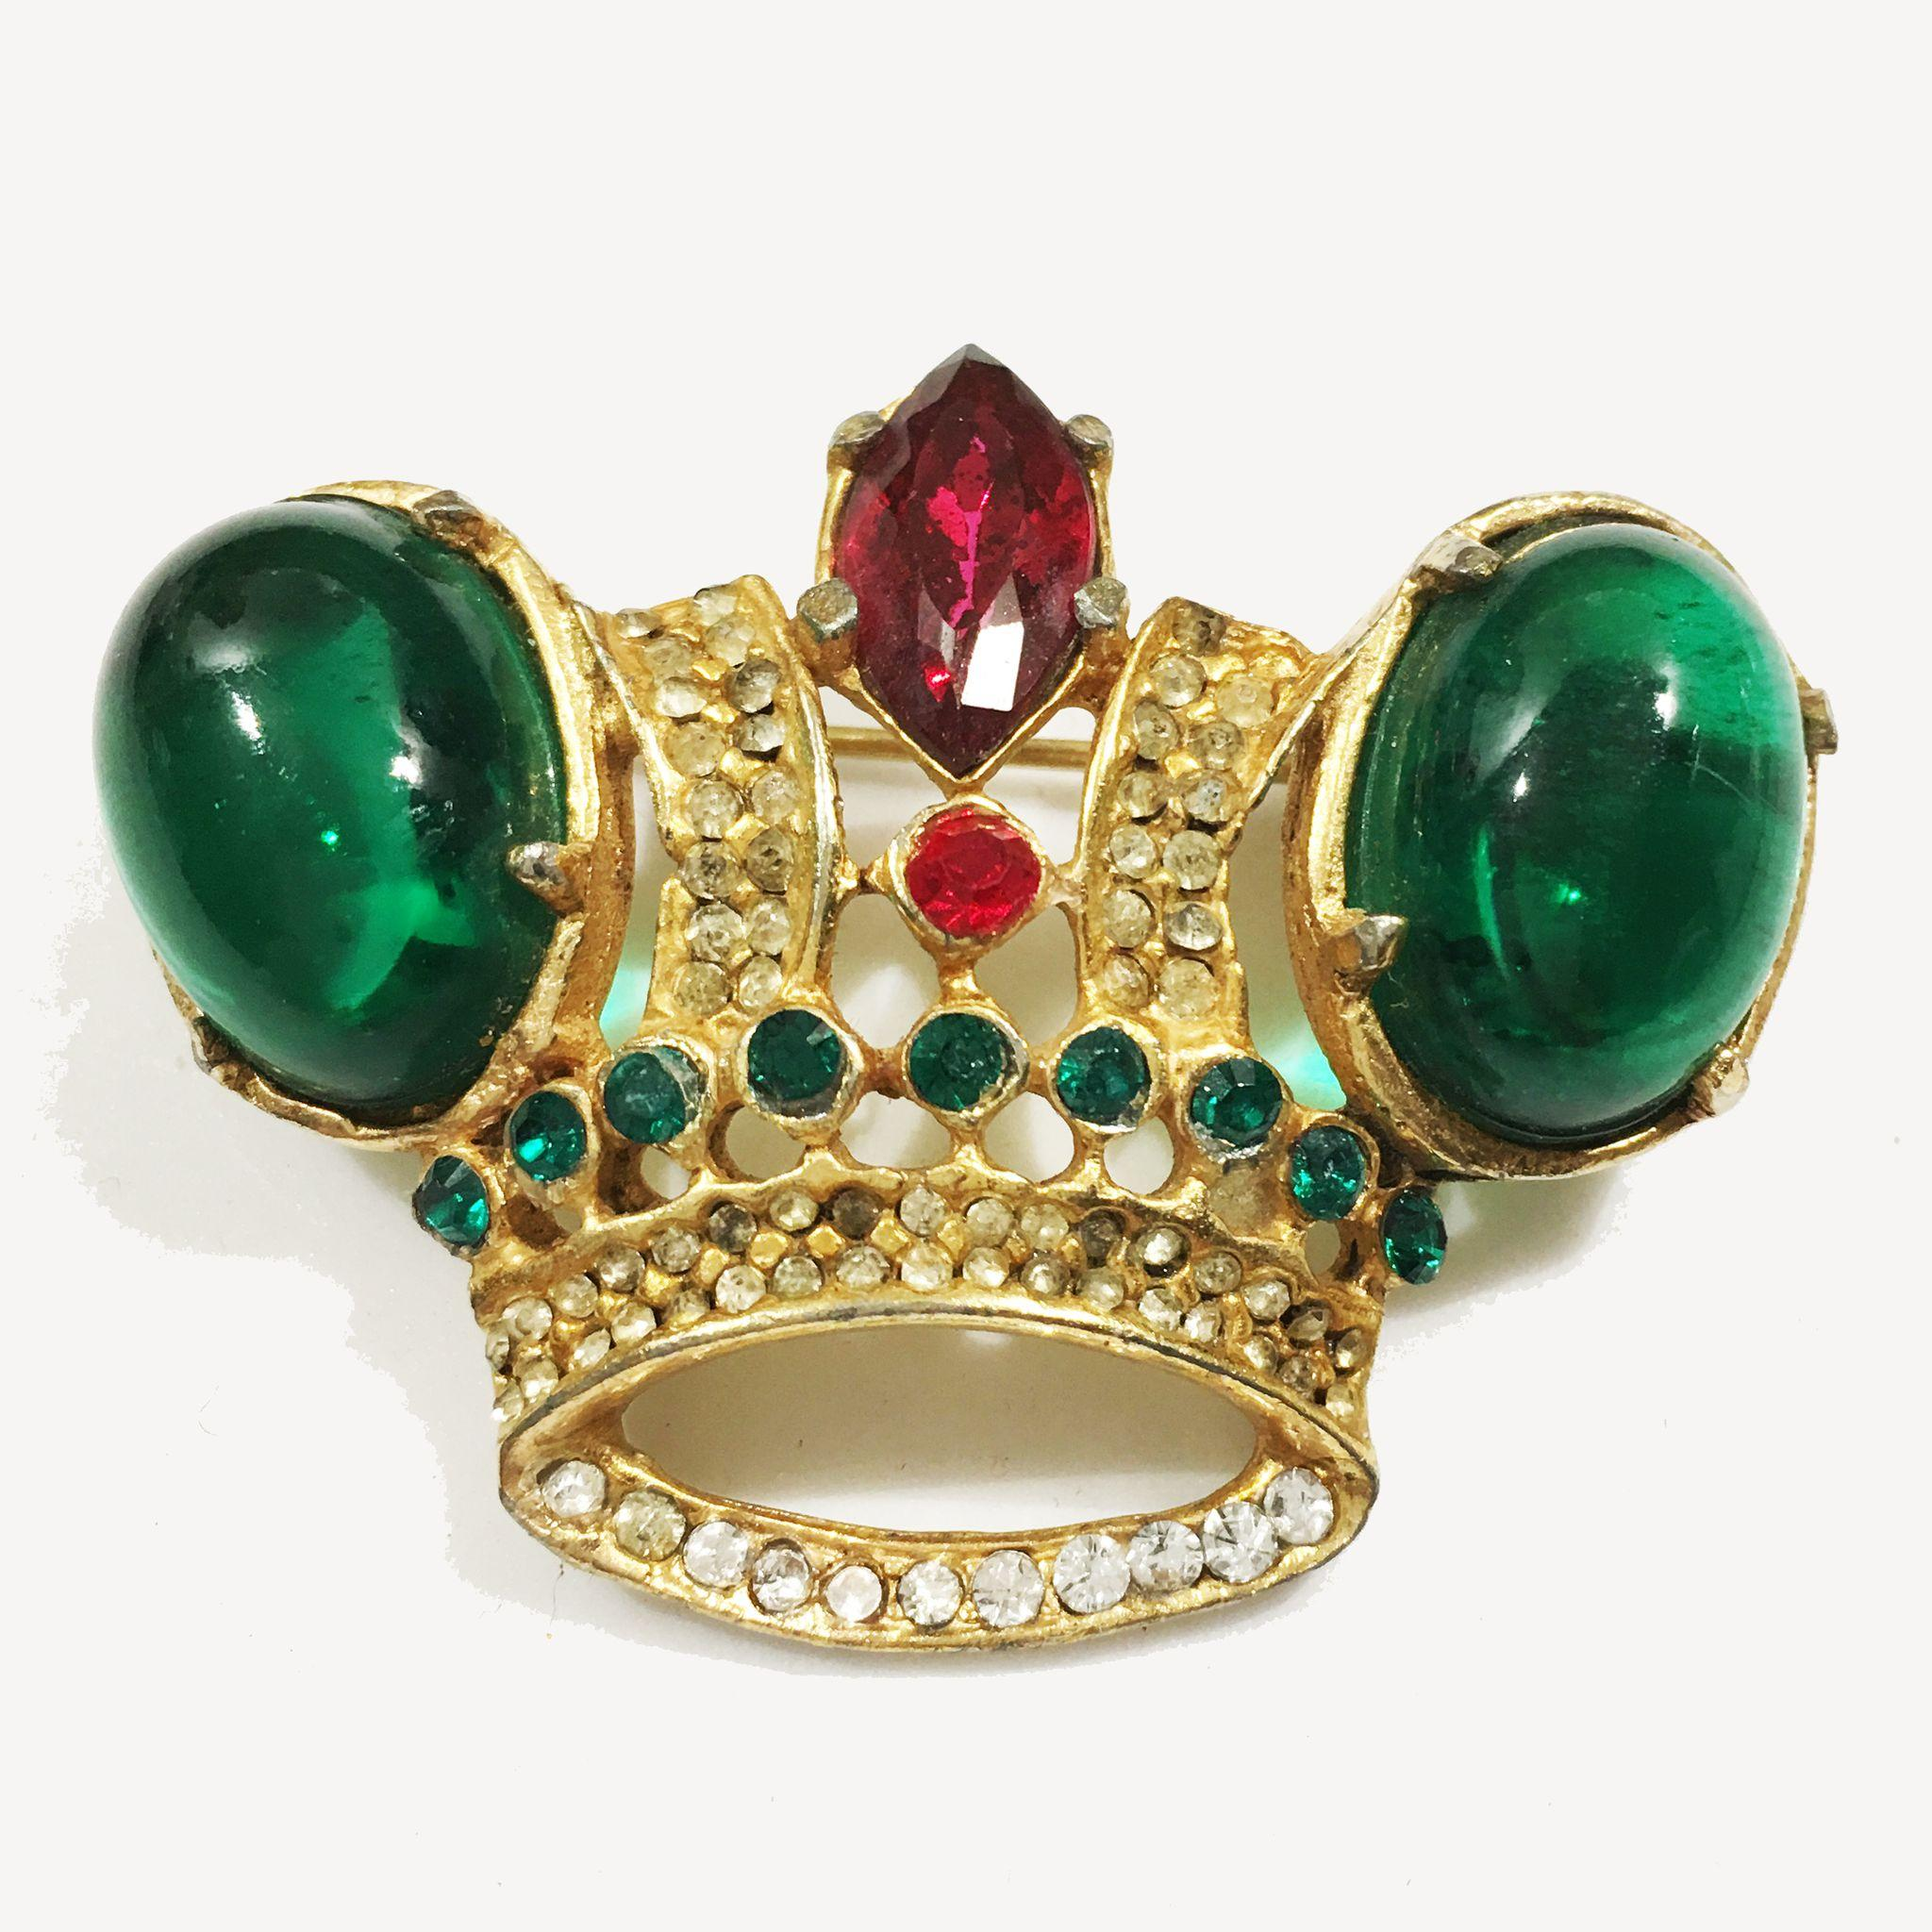 Mogul Colored Royal Crown Brooch with Large Emerald Glass Cabochons, Red Rhinestones and Clear Pave